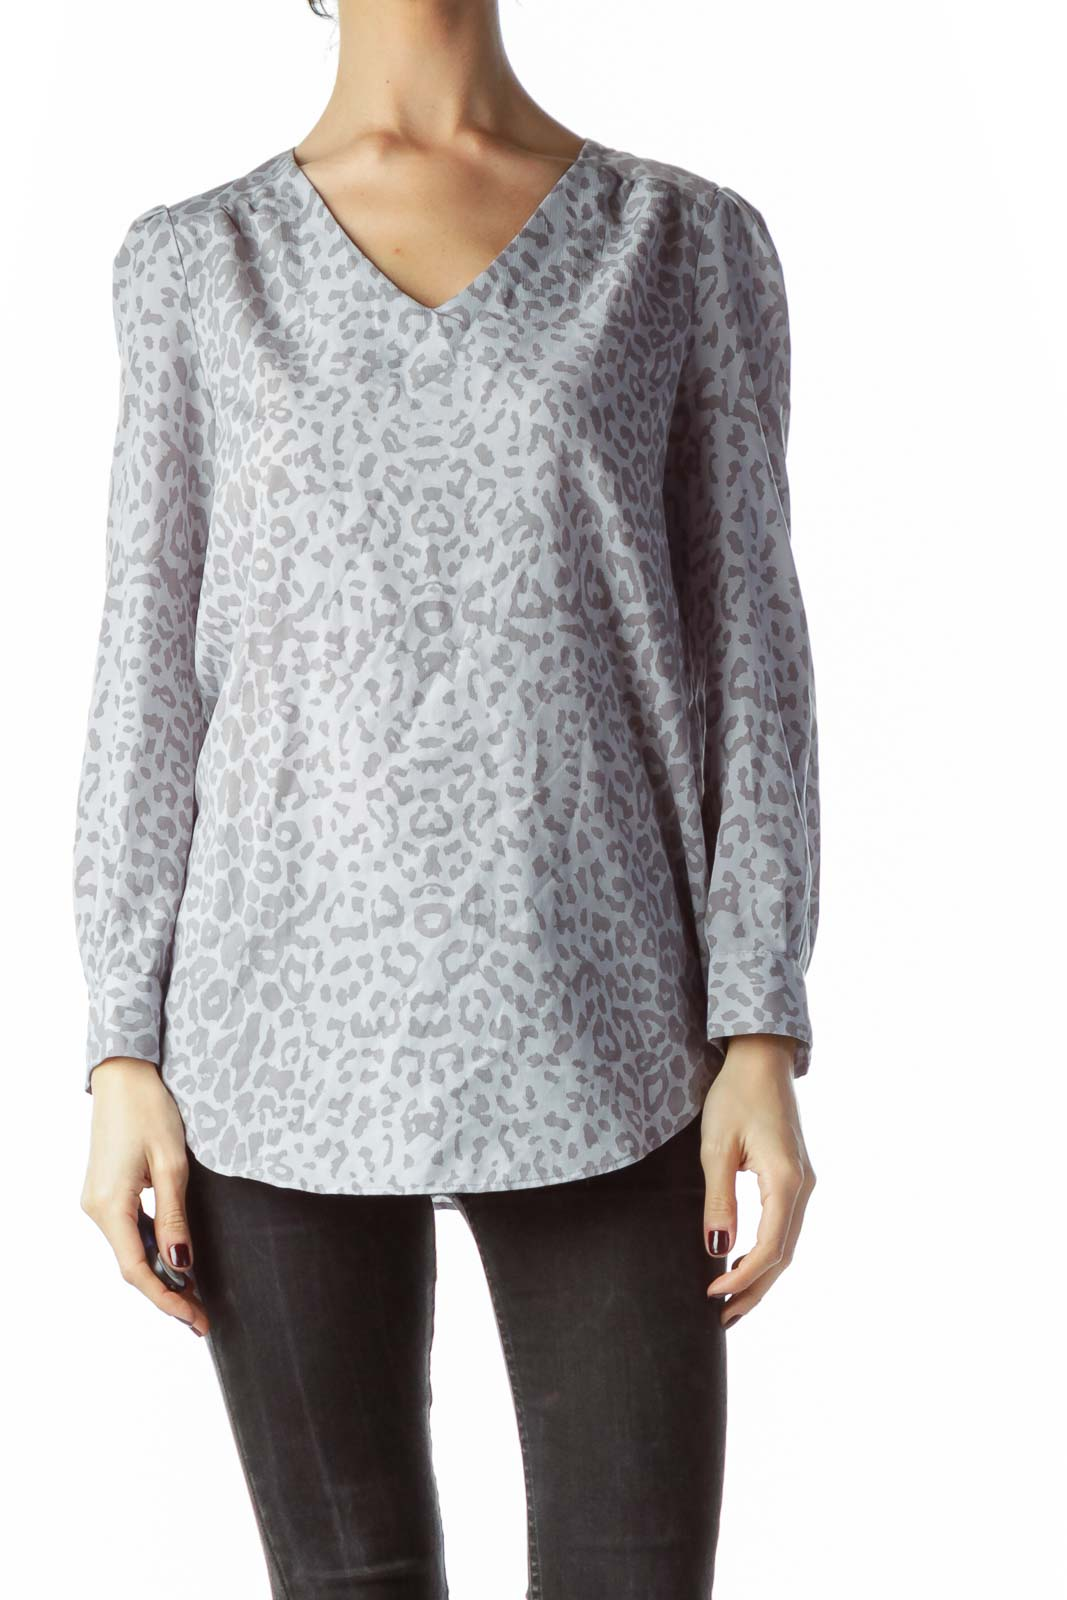 Gray Animal Print Blouse Front